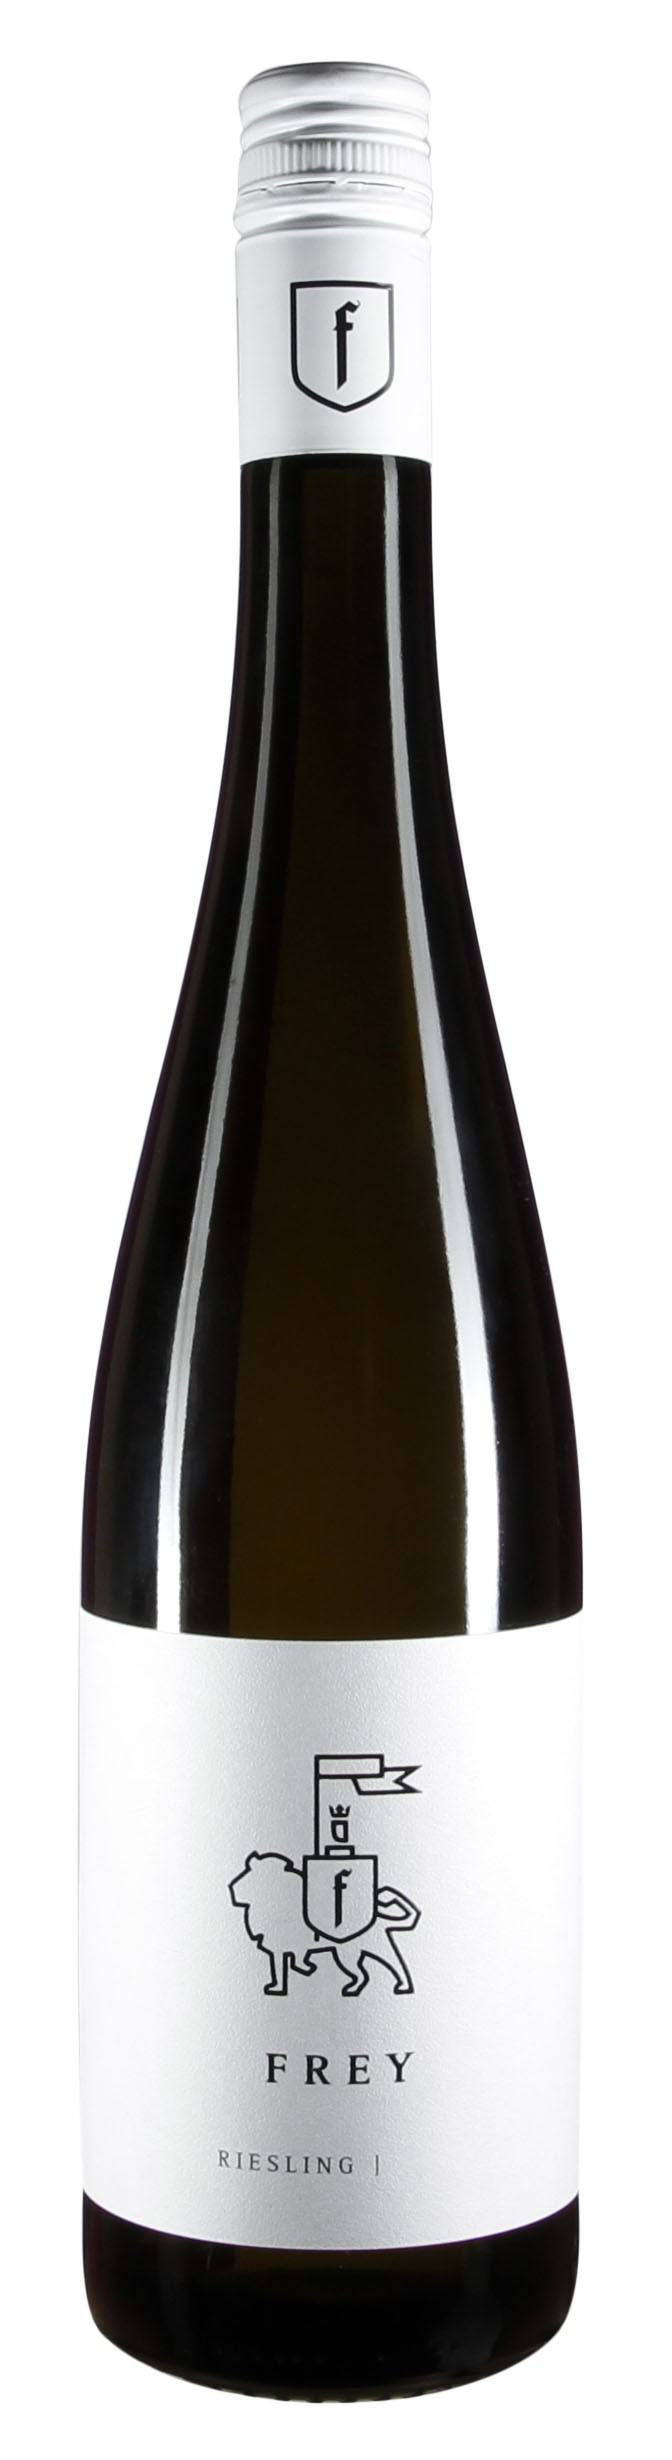 Frey Riesling Dry, Germany